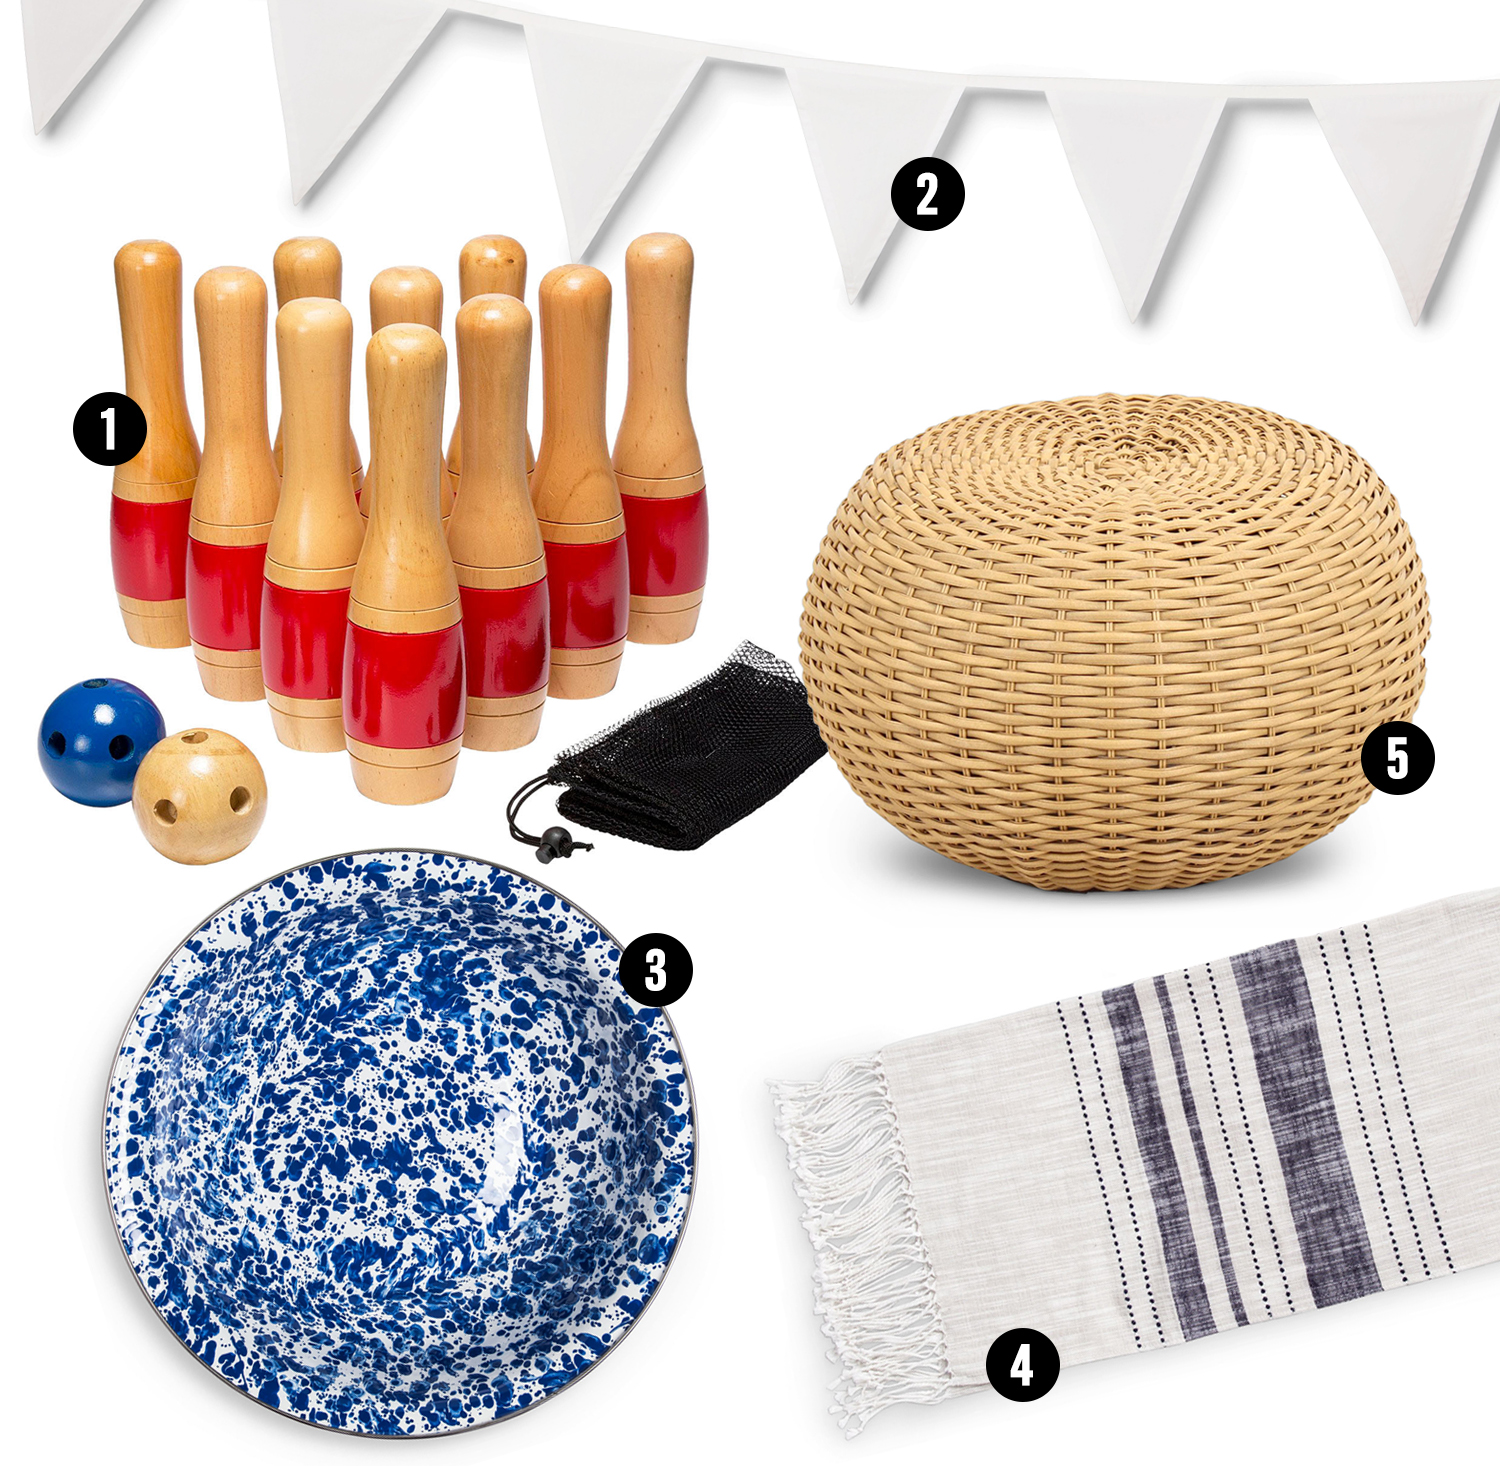 emily henderson's favorite festive products